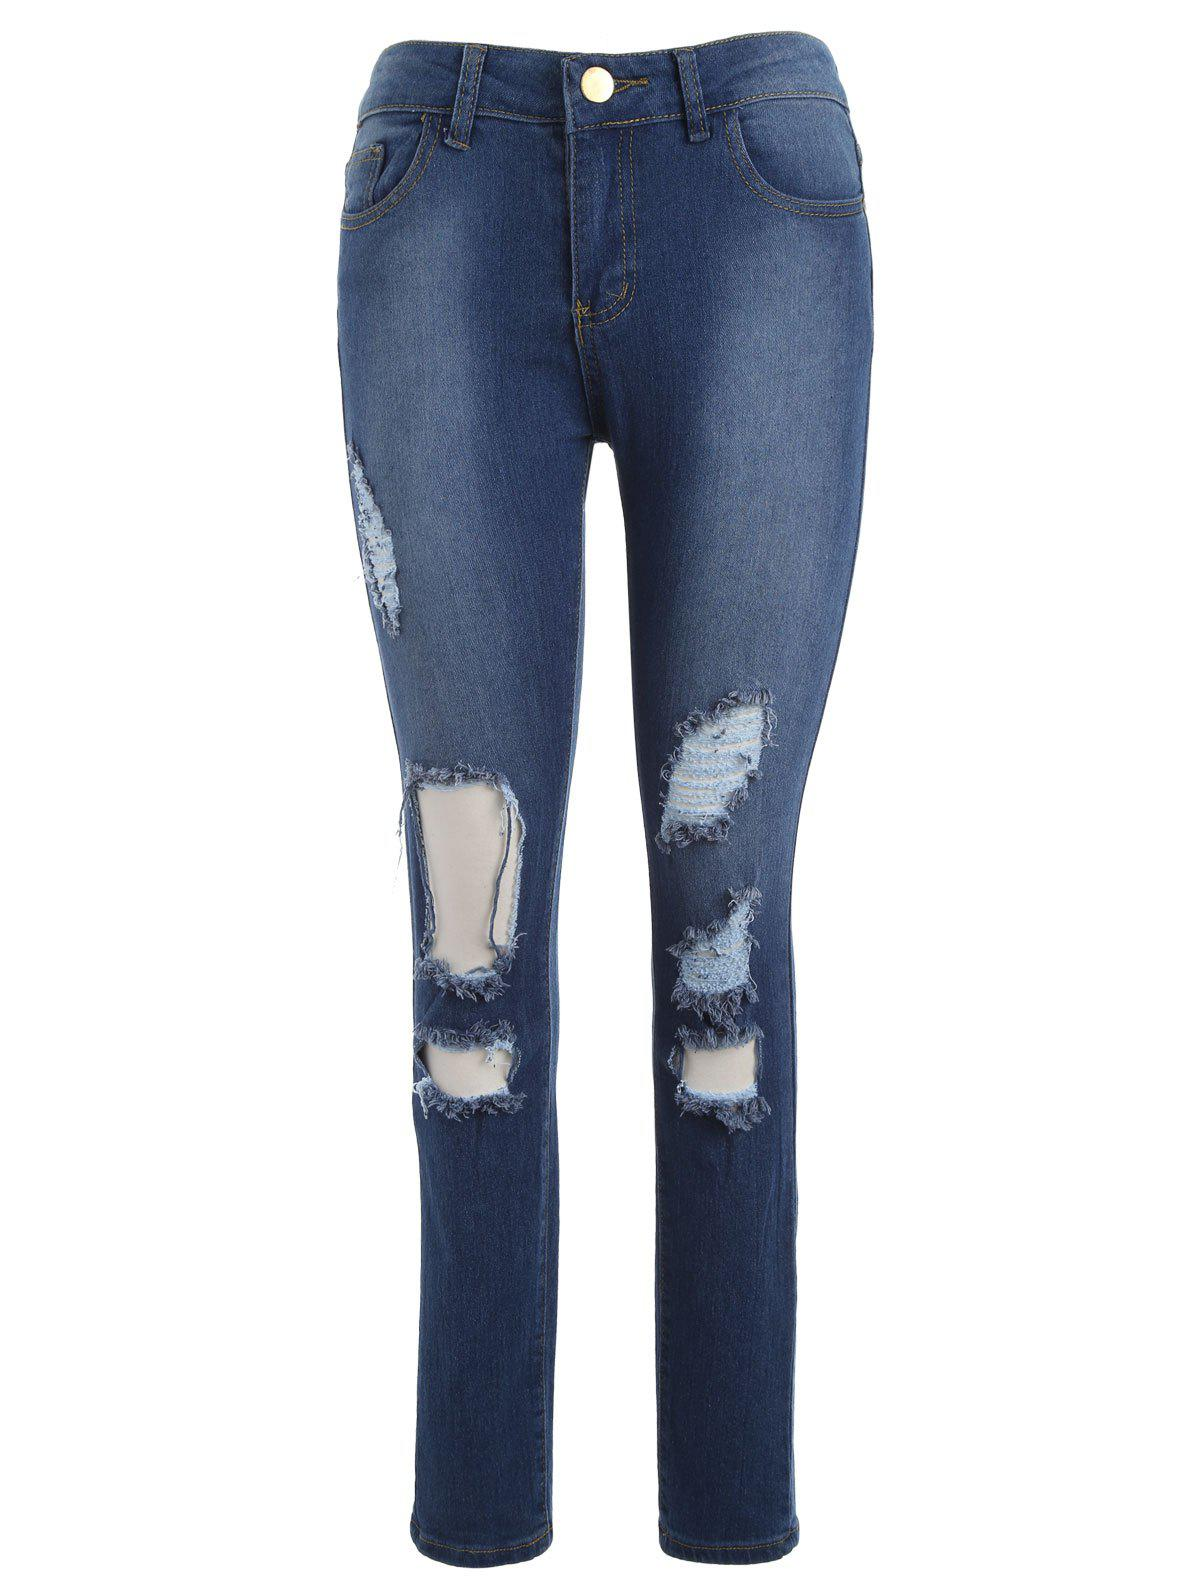 High Waisted Destroyed Ripped Skinny Jeans - BLUE XL